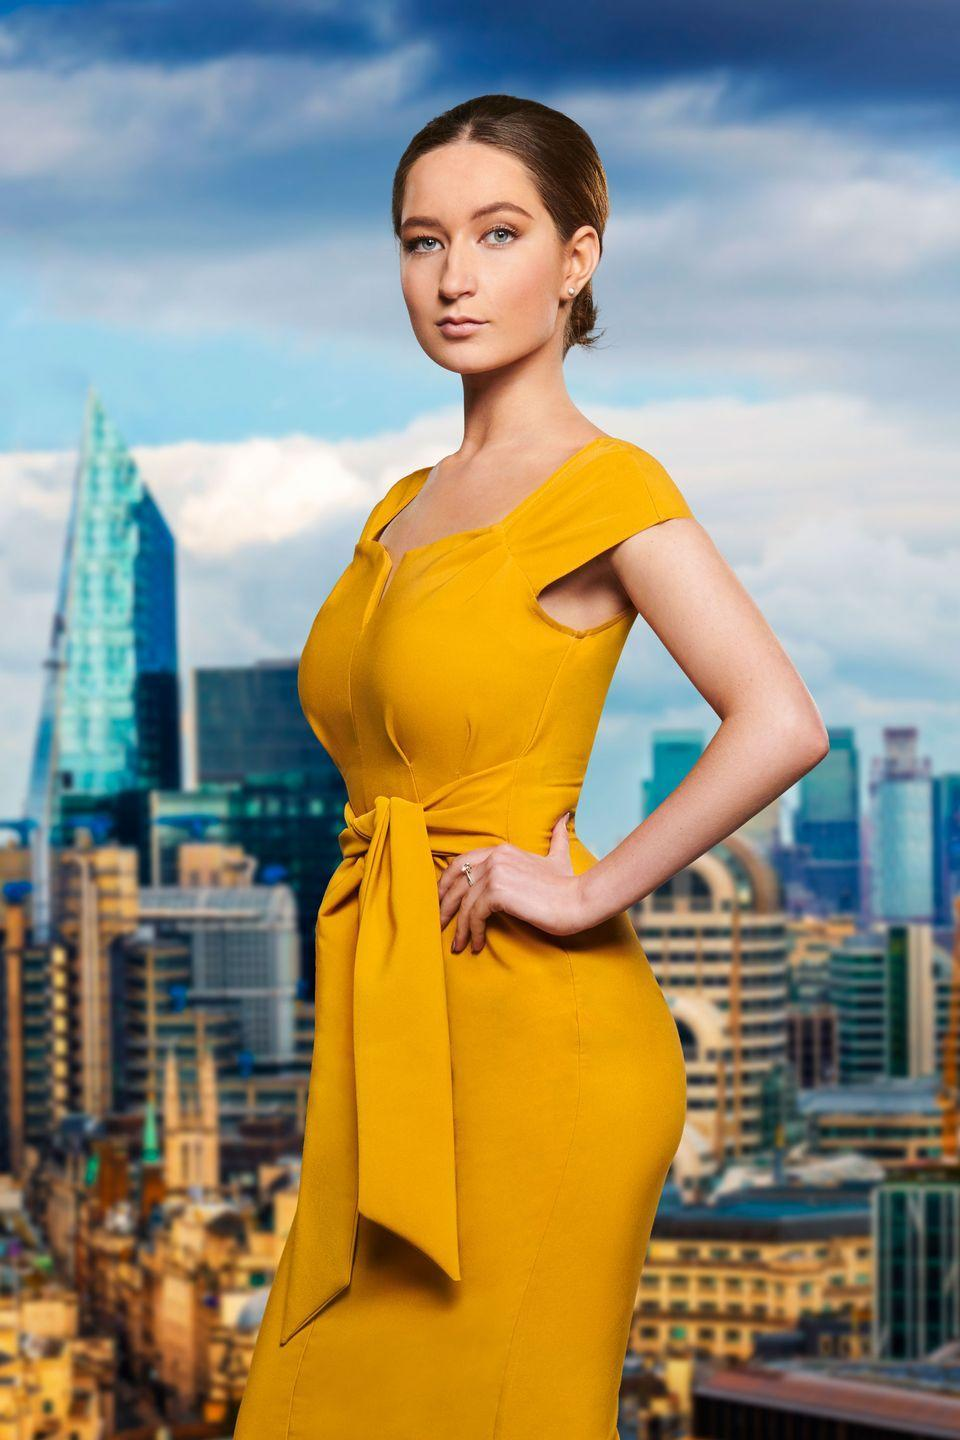 """<p>""""I bring 'class' to everything and ensure nothing I do is half-standard or tacky.""""</p><p>Lottie, from Somerset, is a 19-year-old librarian who says she is """"very cut-throat"""" and insists that she is no push over. She credits her poise and """"powers of persuasion"""" as her greatest business qualities.</p>"""